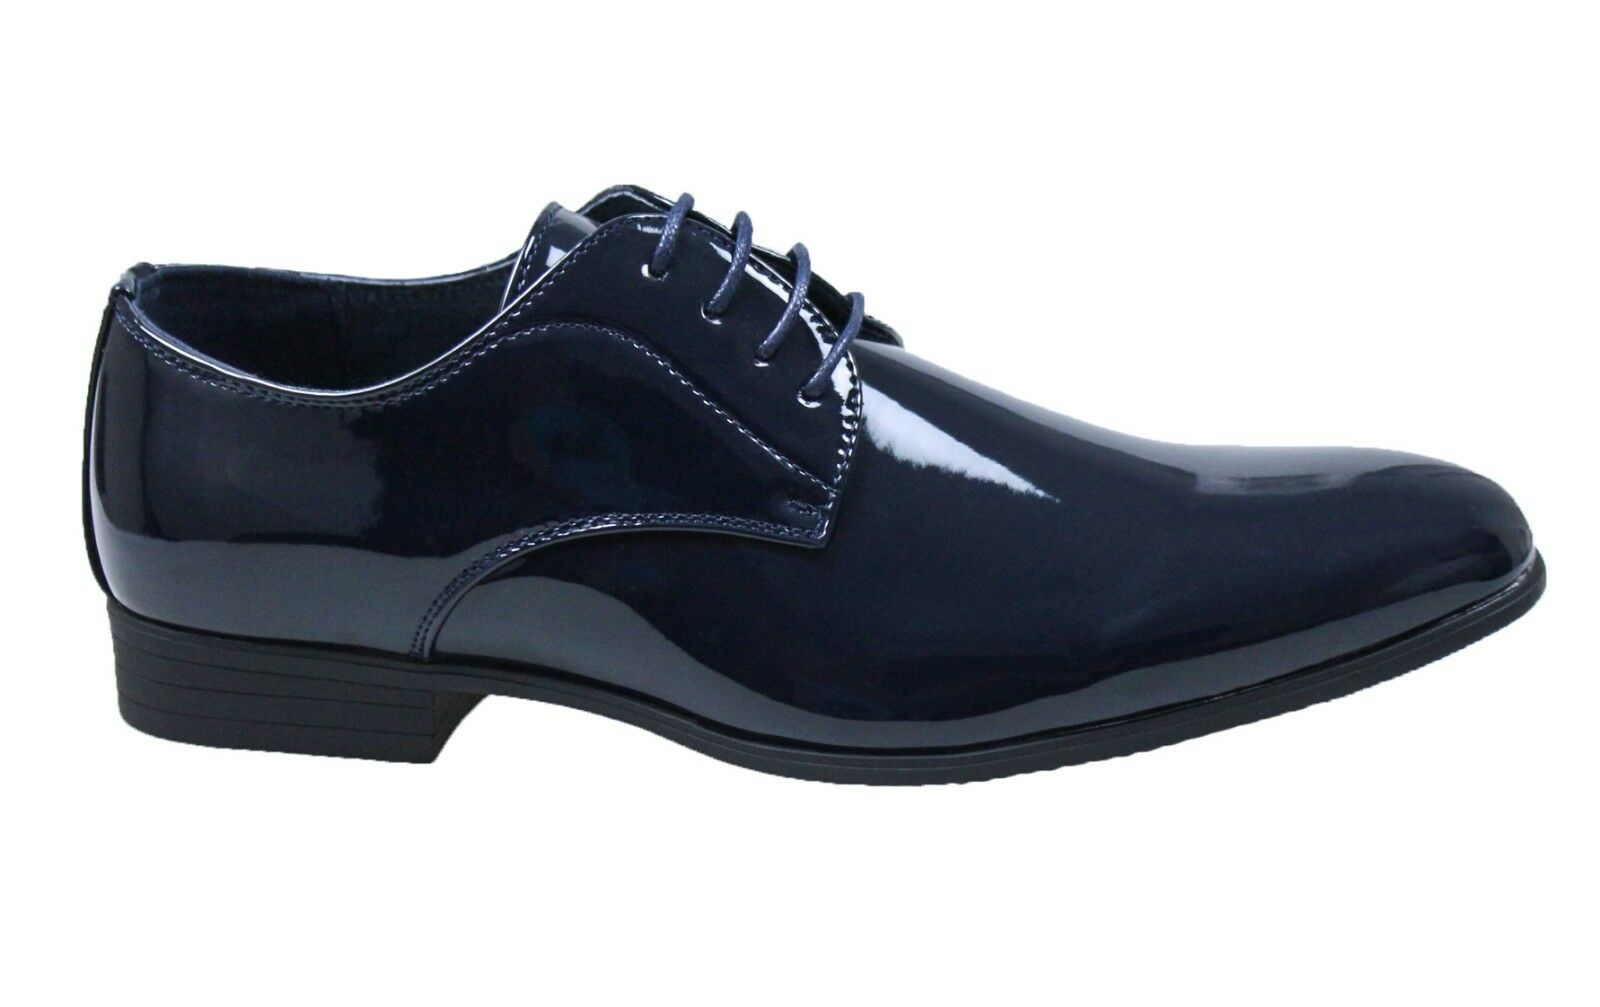 Men's shoes Diamond Class dark bluee polished paint formal elegant ceremony